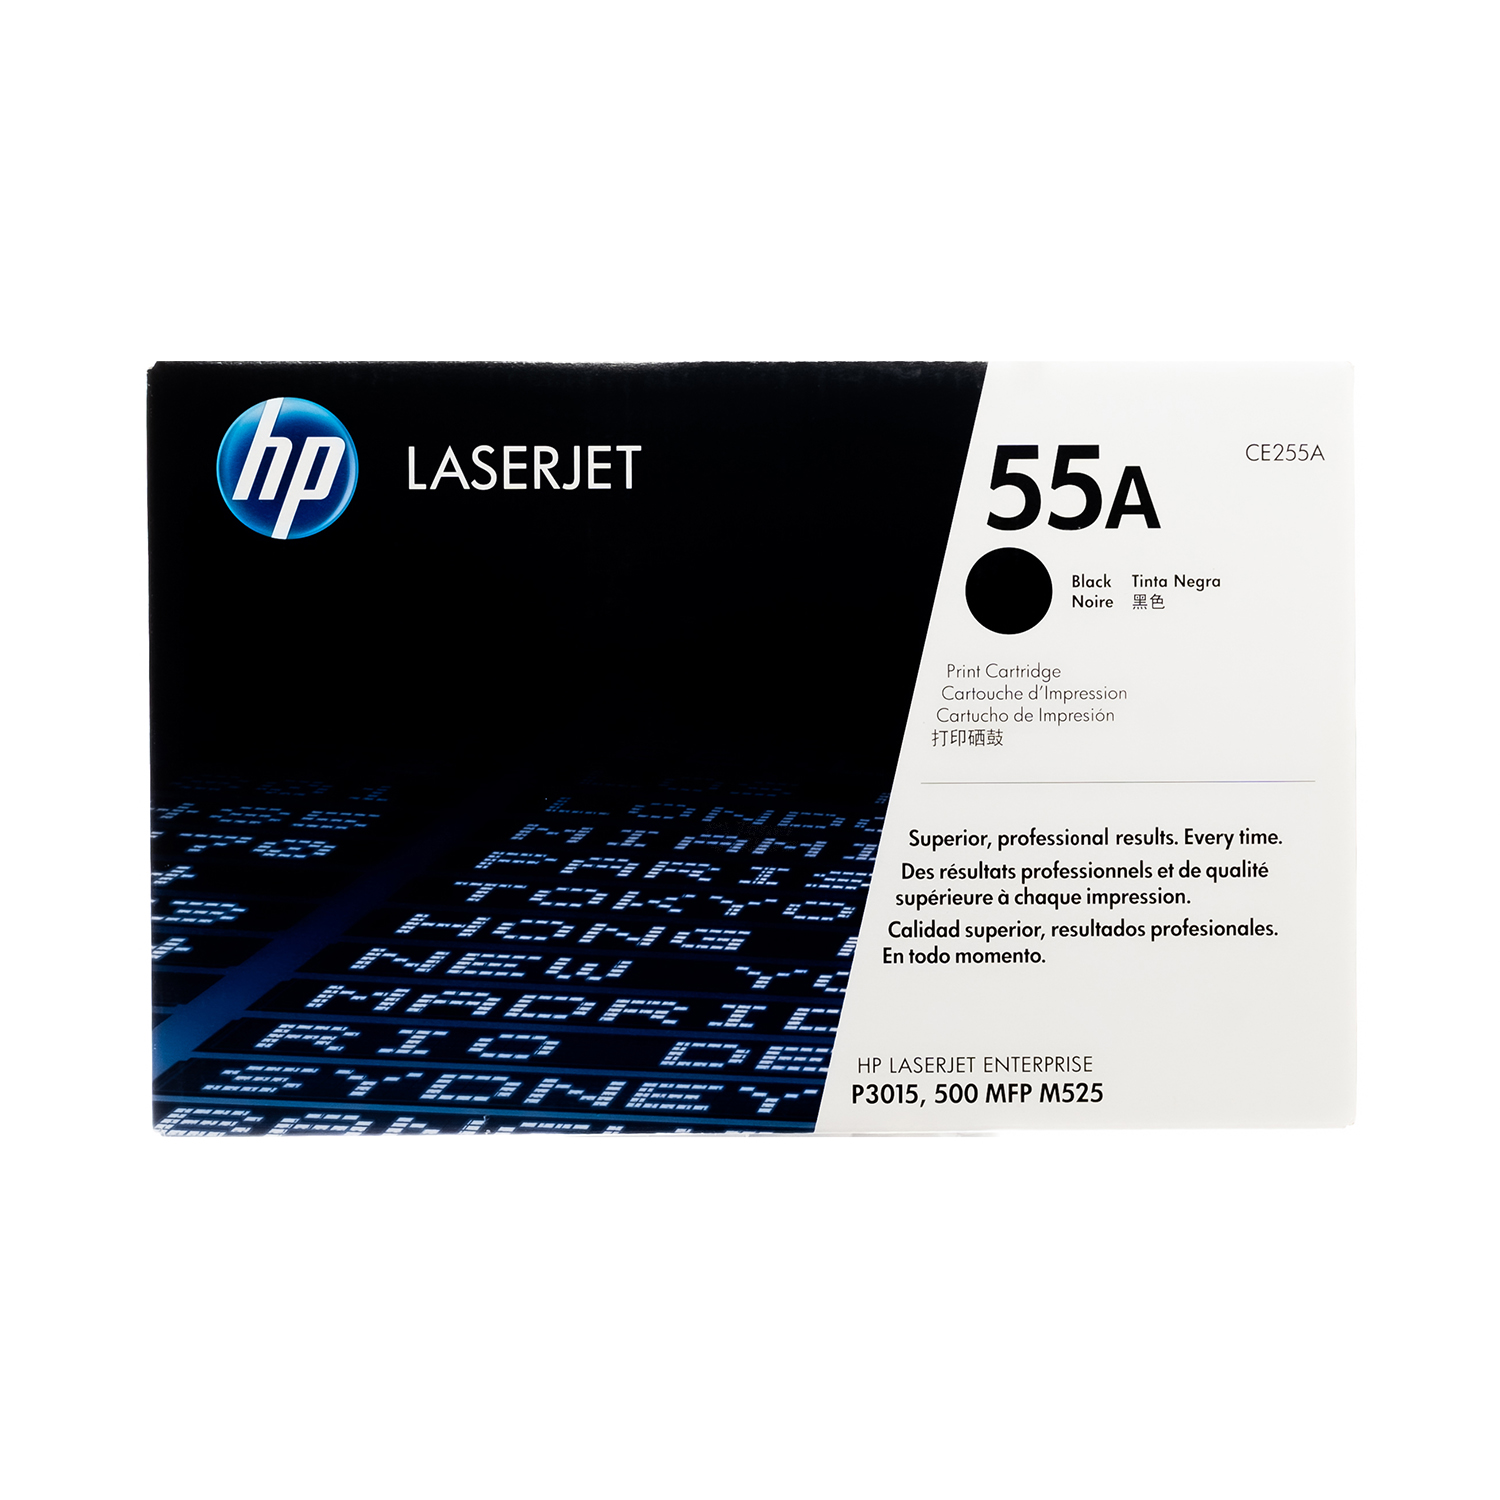 CE255A  | HP 55A | Original HP LaserJet Toner Cartridge - Black